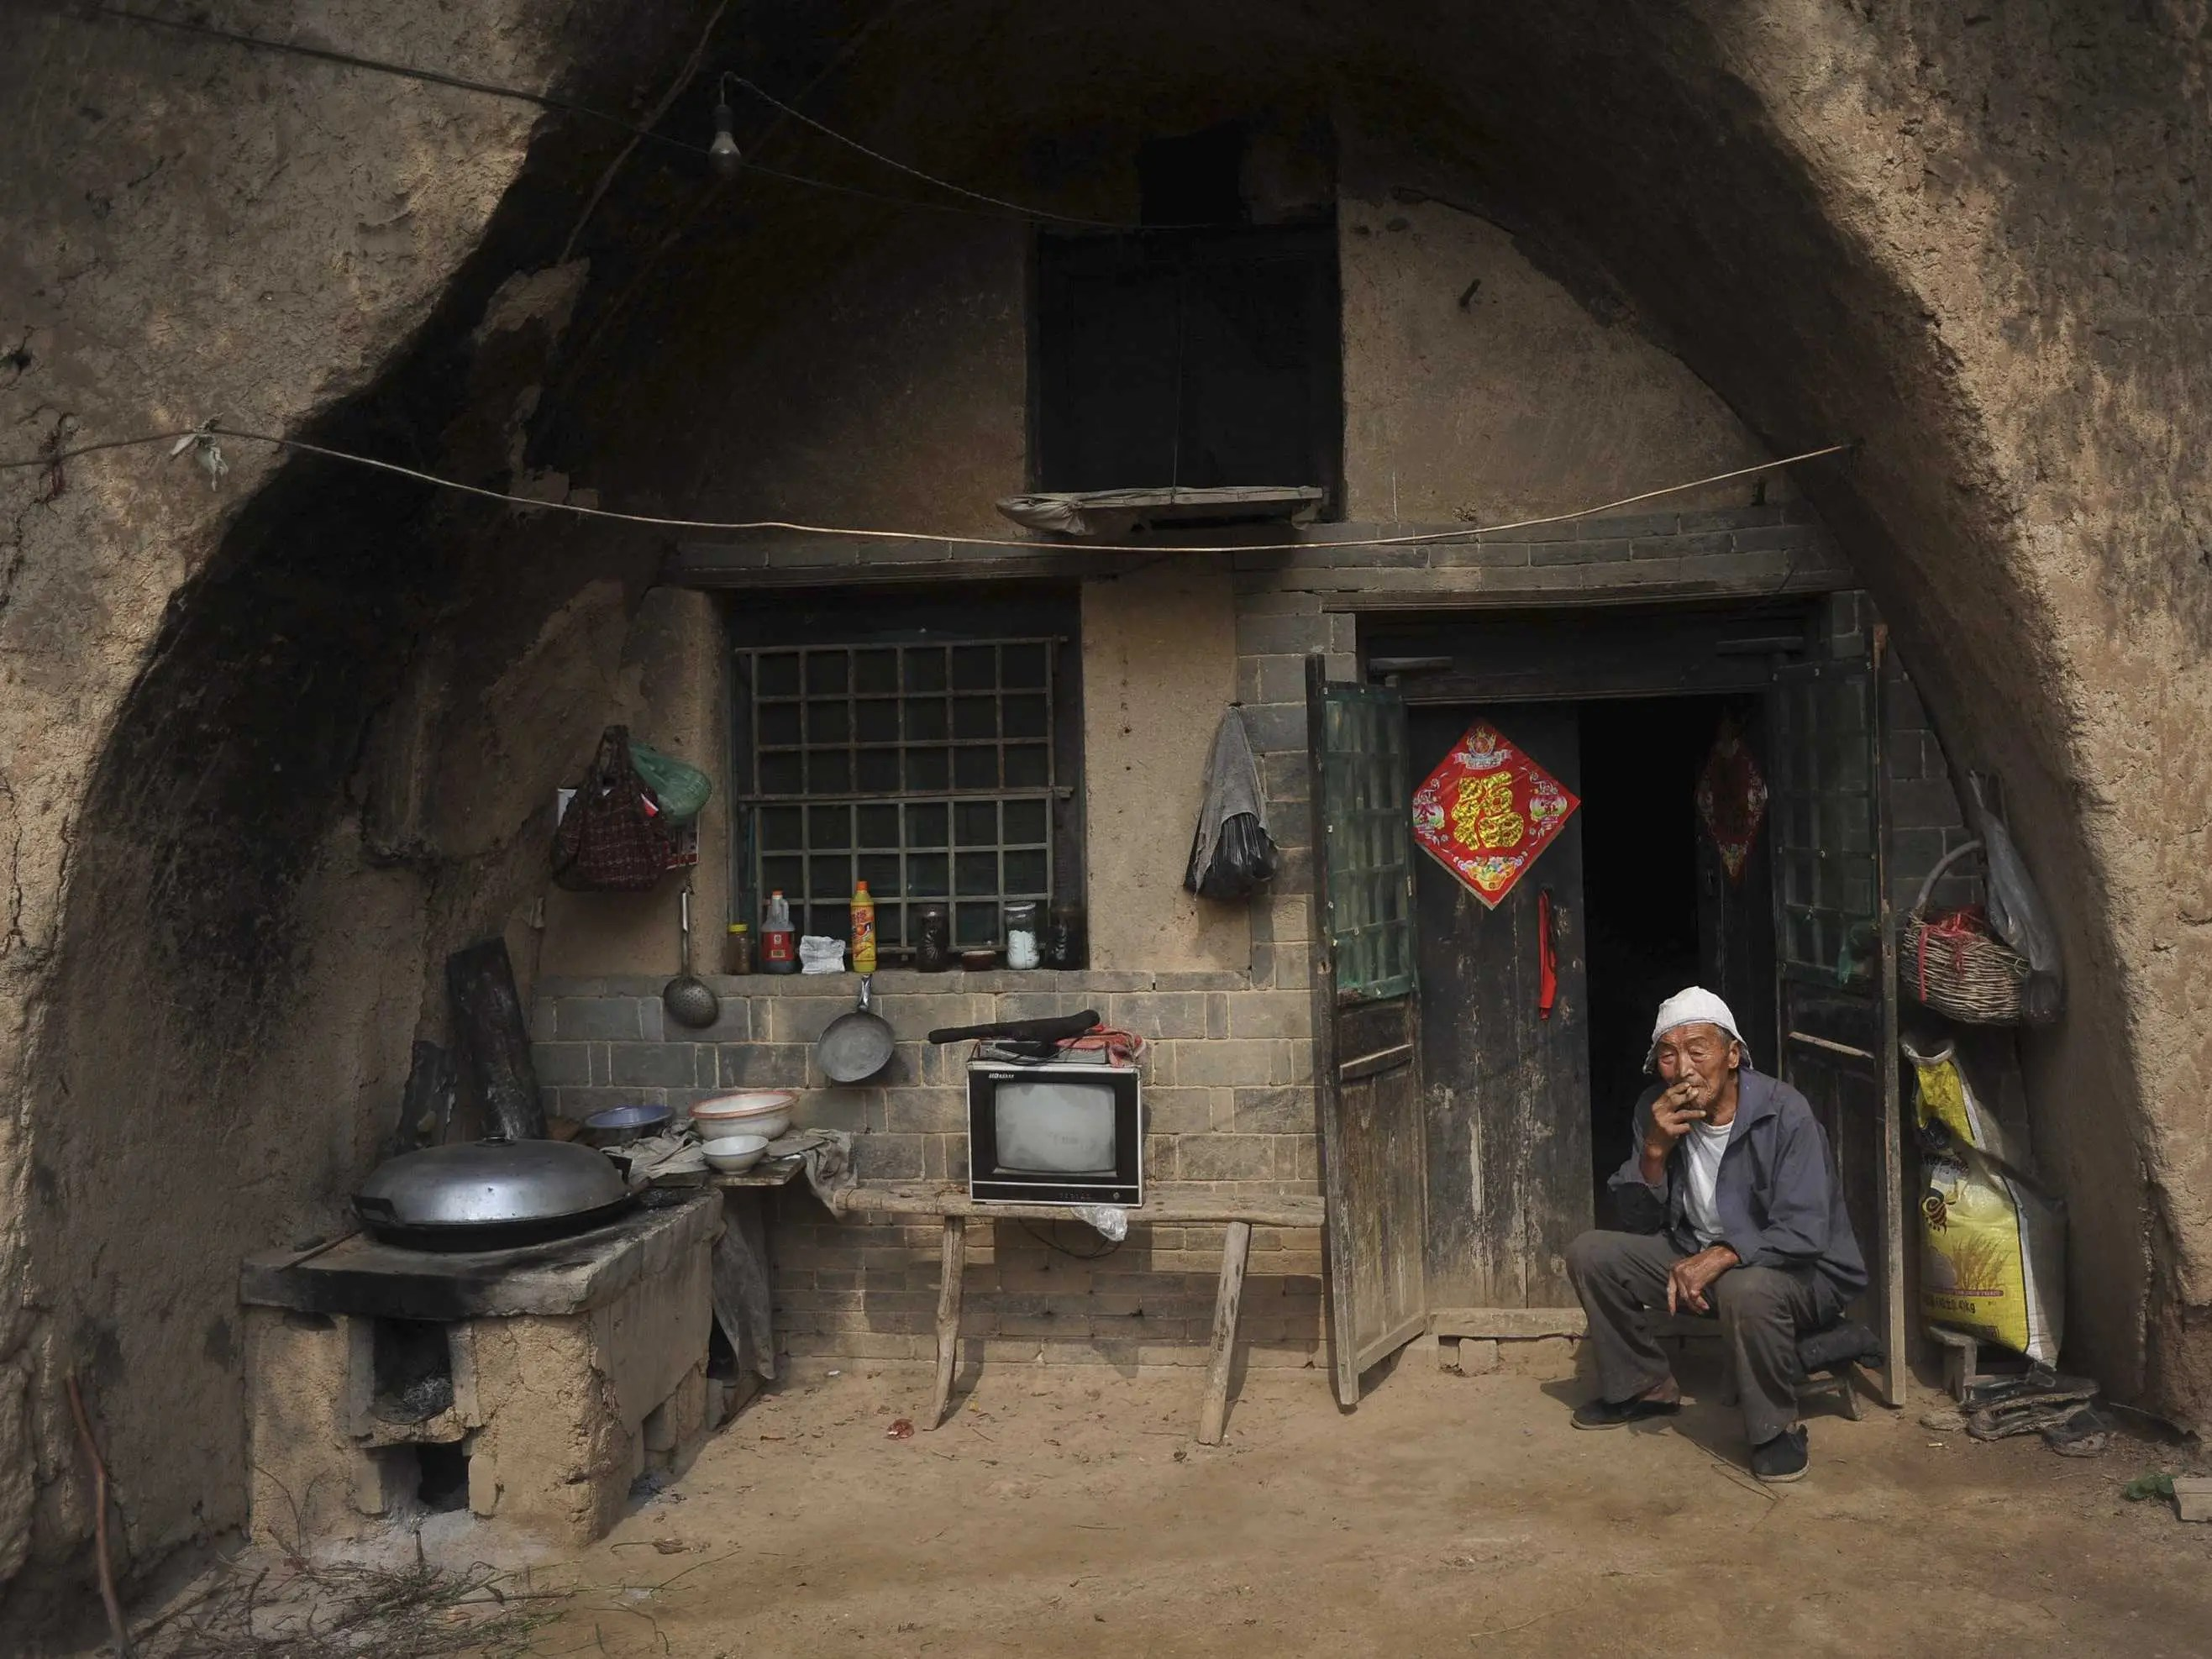 Over 30 million people in China live in caves: that's more than the population of Saudi Arabia.